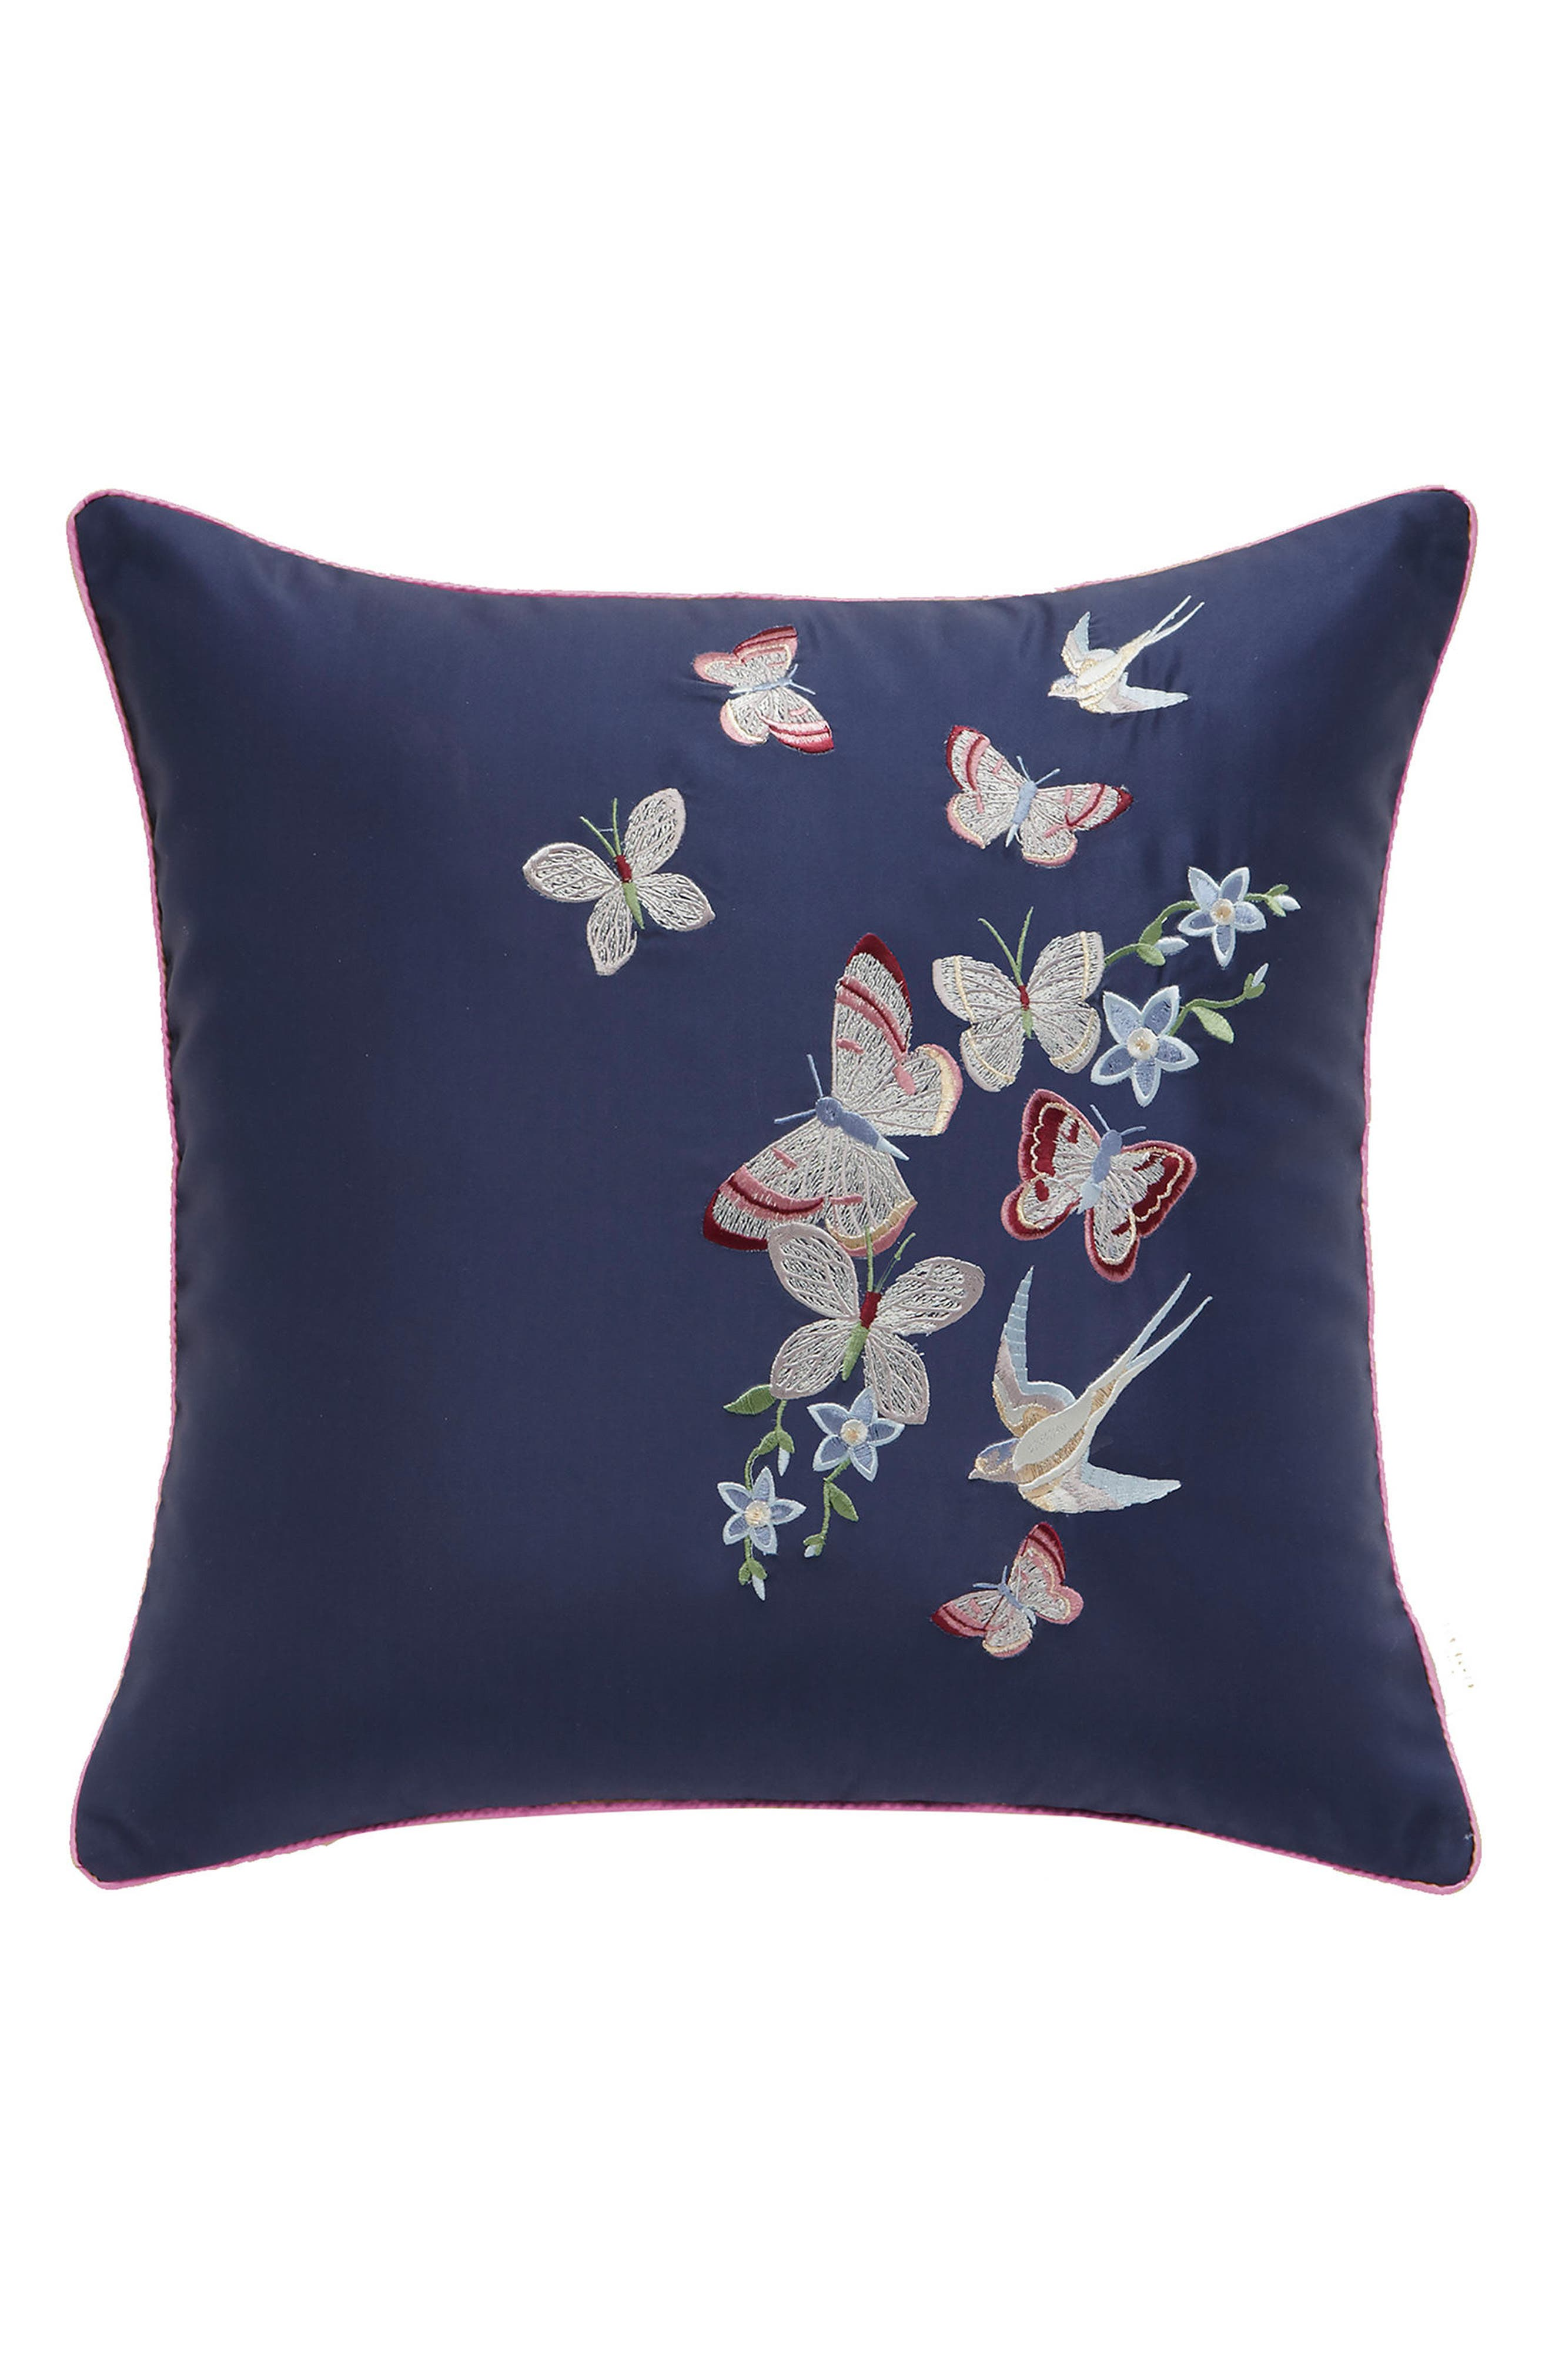 Butterfly Embroidered Accent Pillow,                             Main thumbnail 1, color,                             NAVY